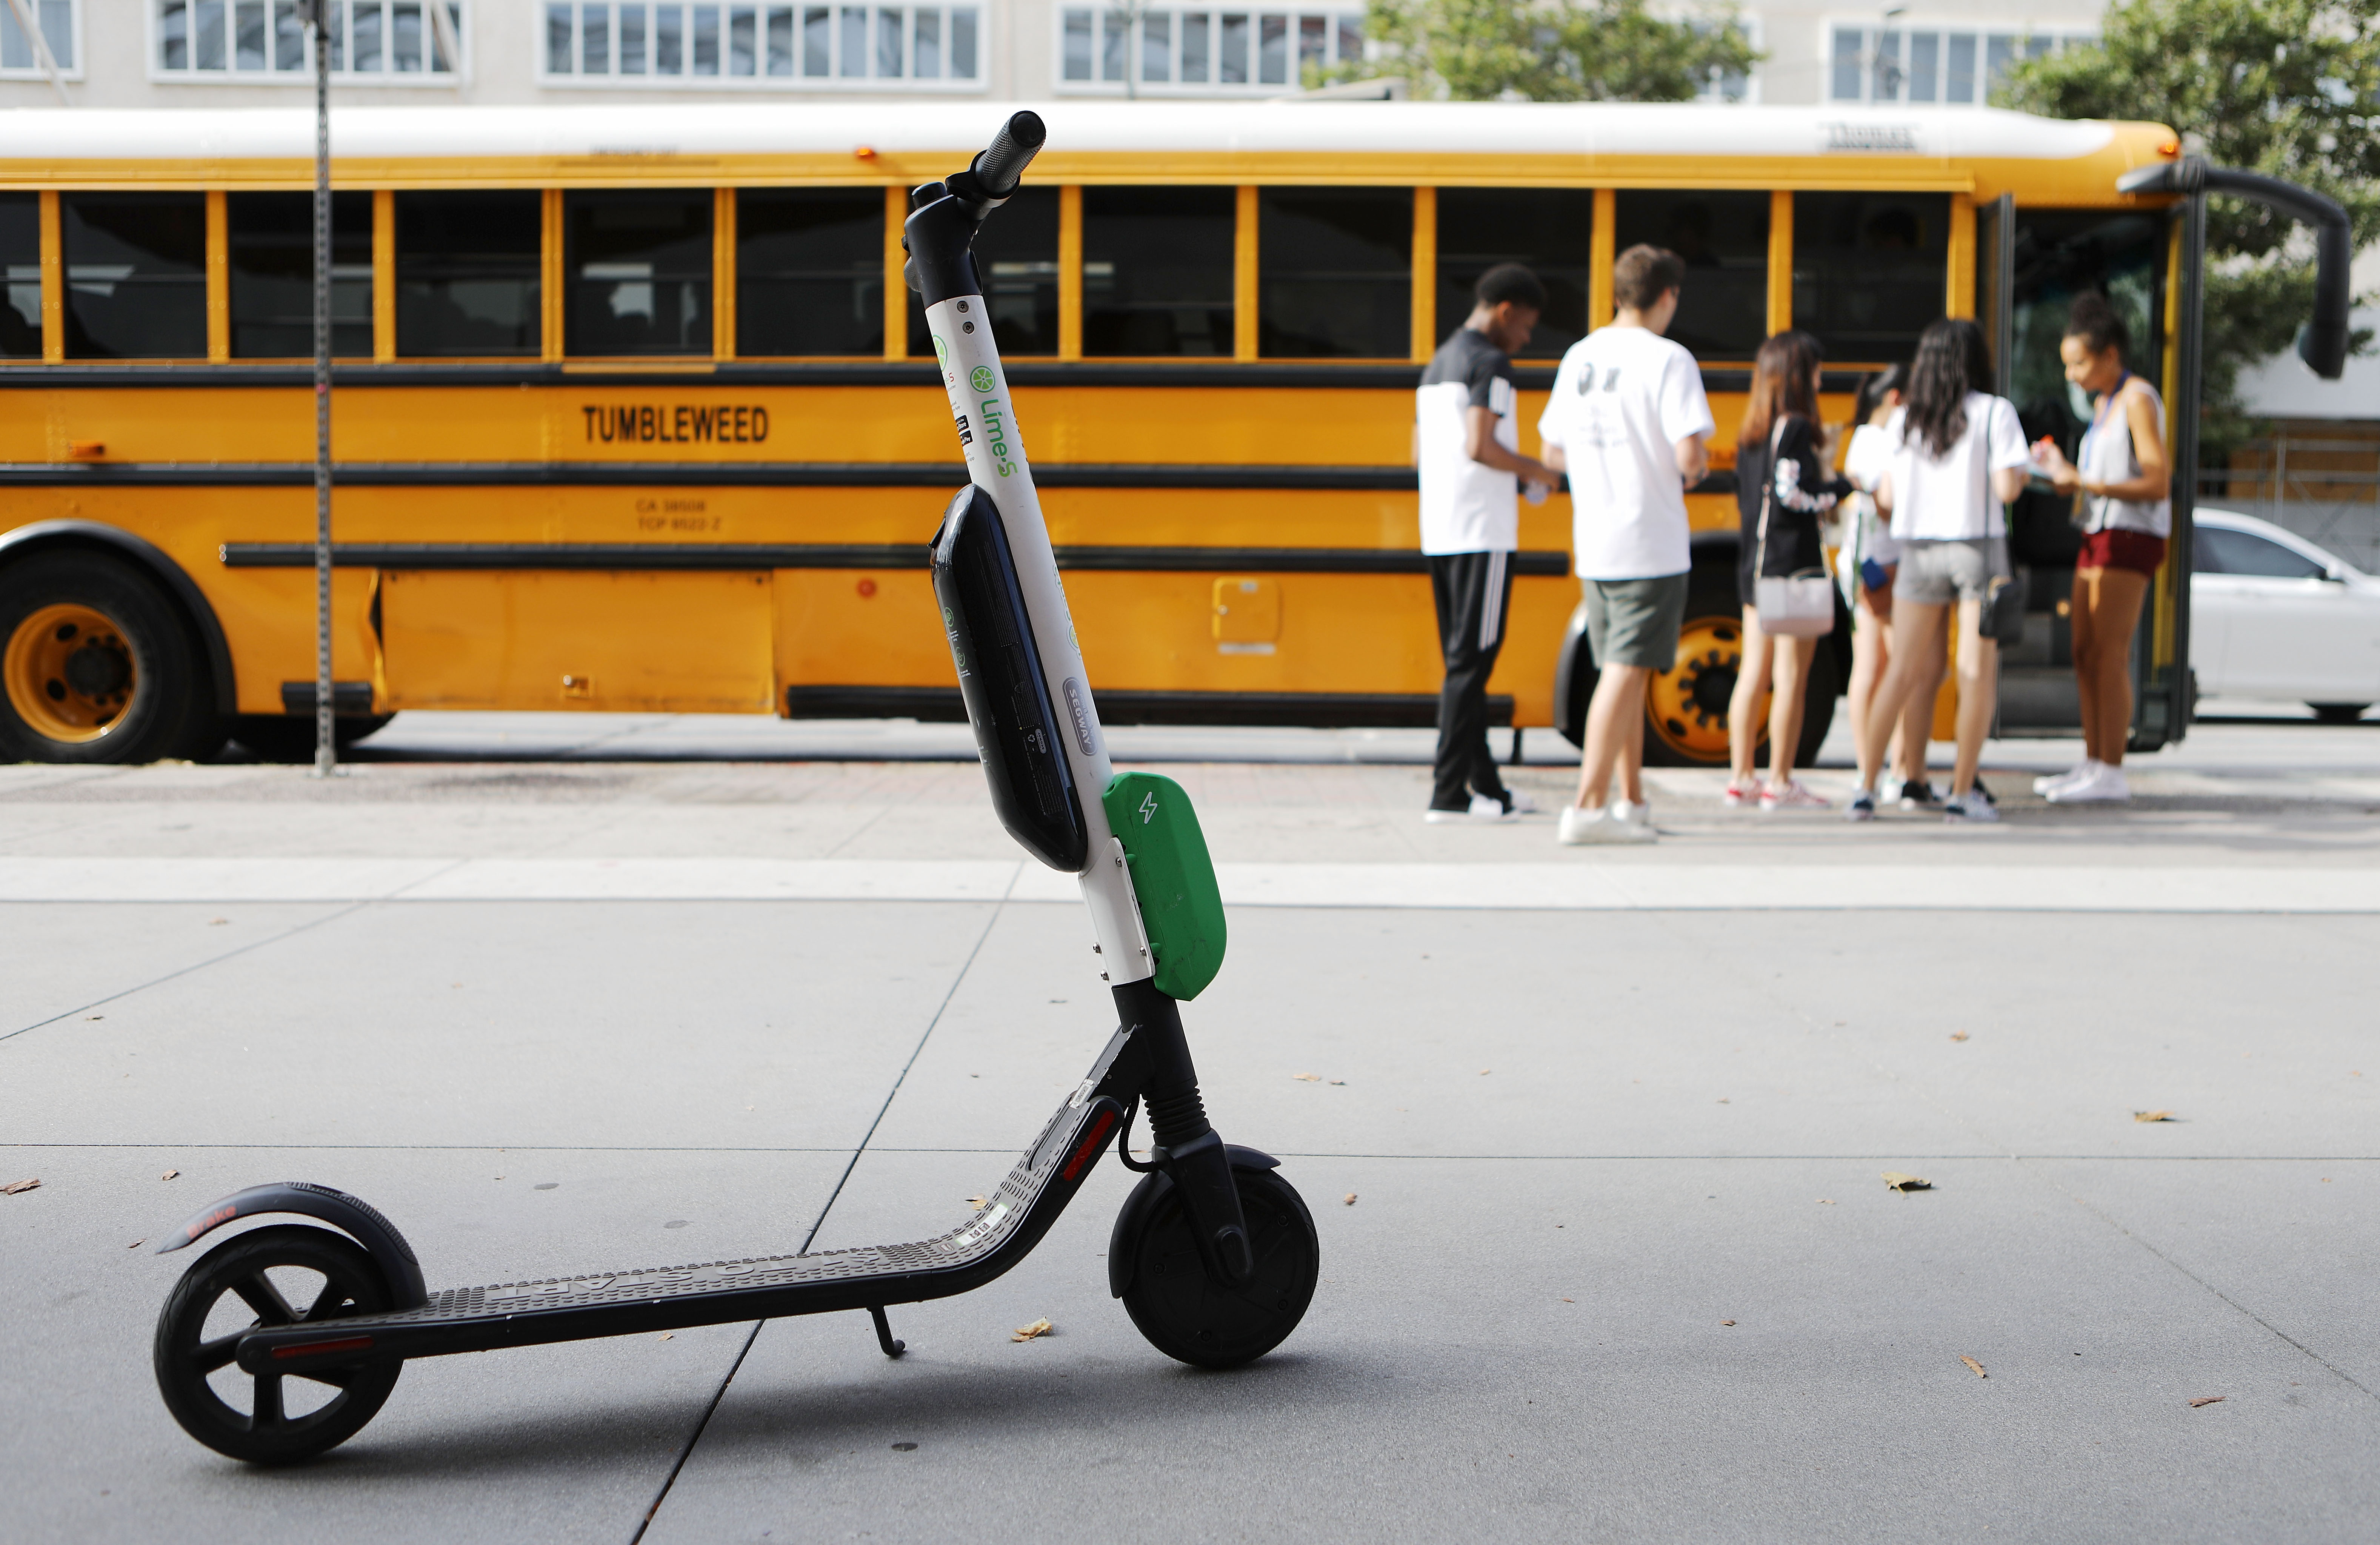 An electric scooter parked beside a school bus.